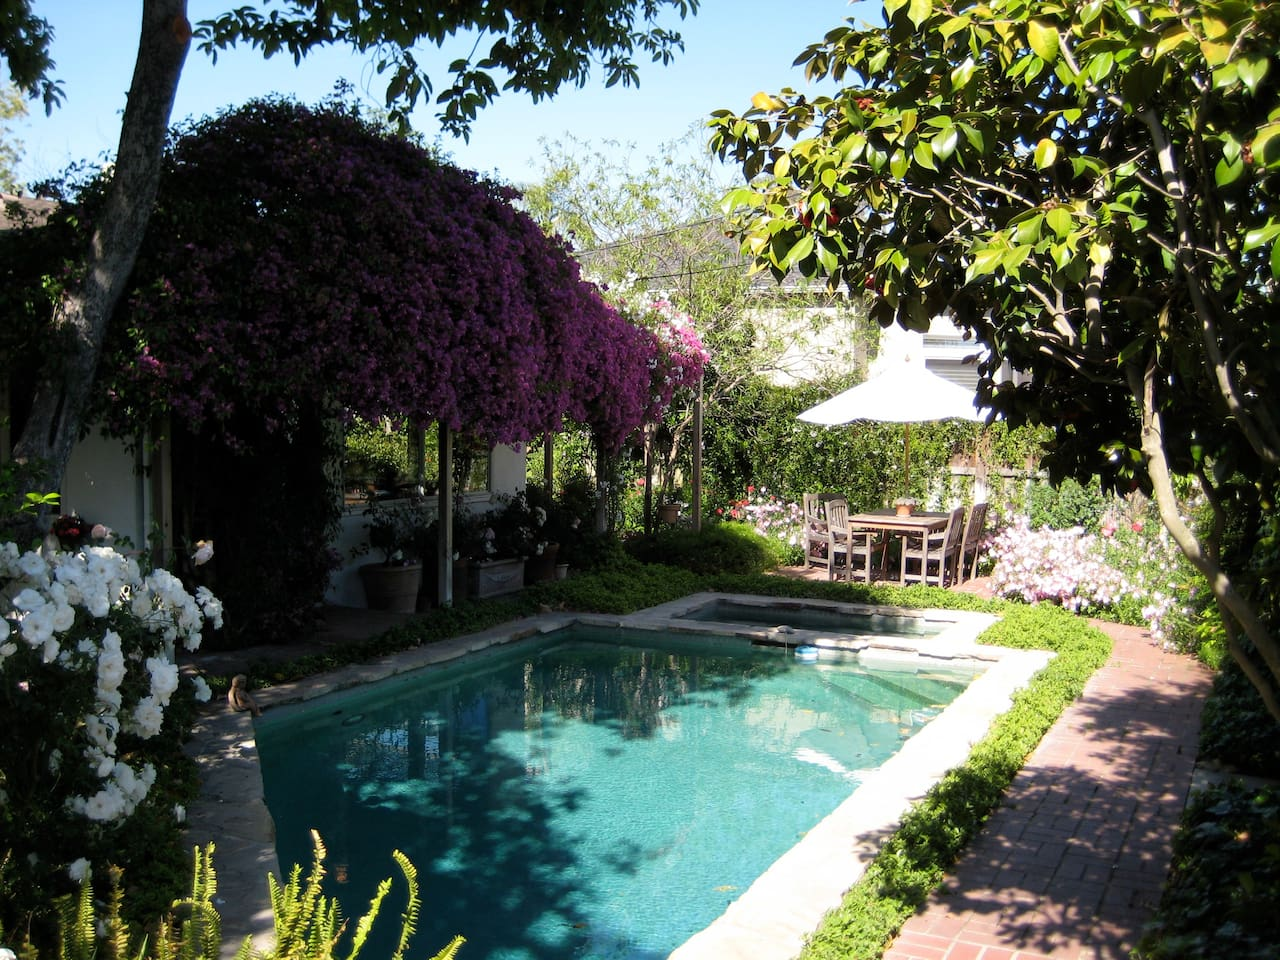 At Hesby House, the pool and jacuzzi are perfect for cooling off after a day enjoying LA.